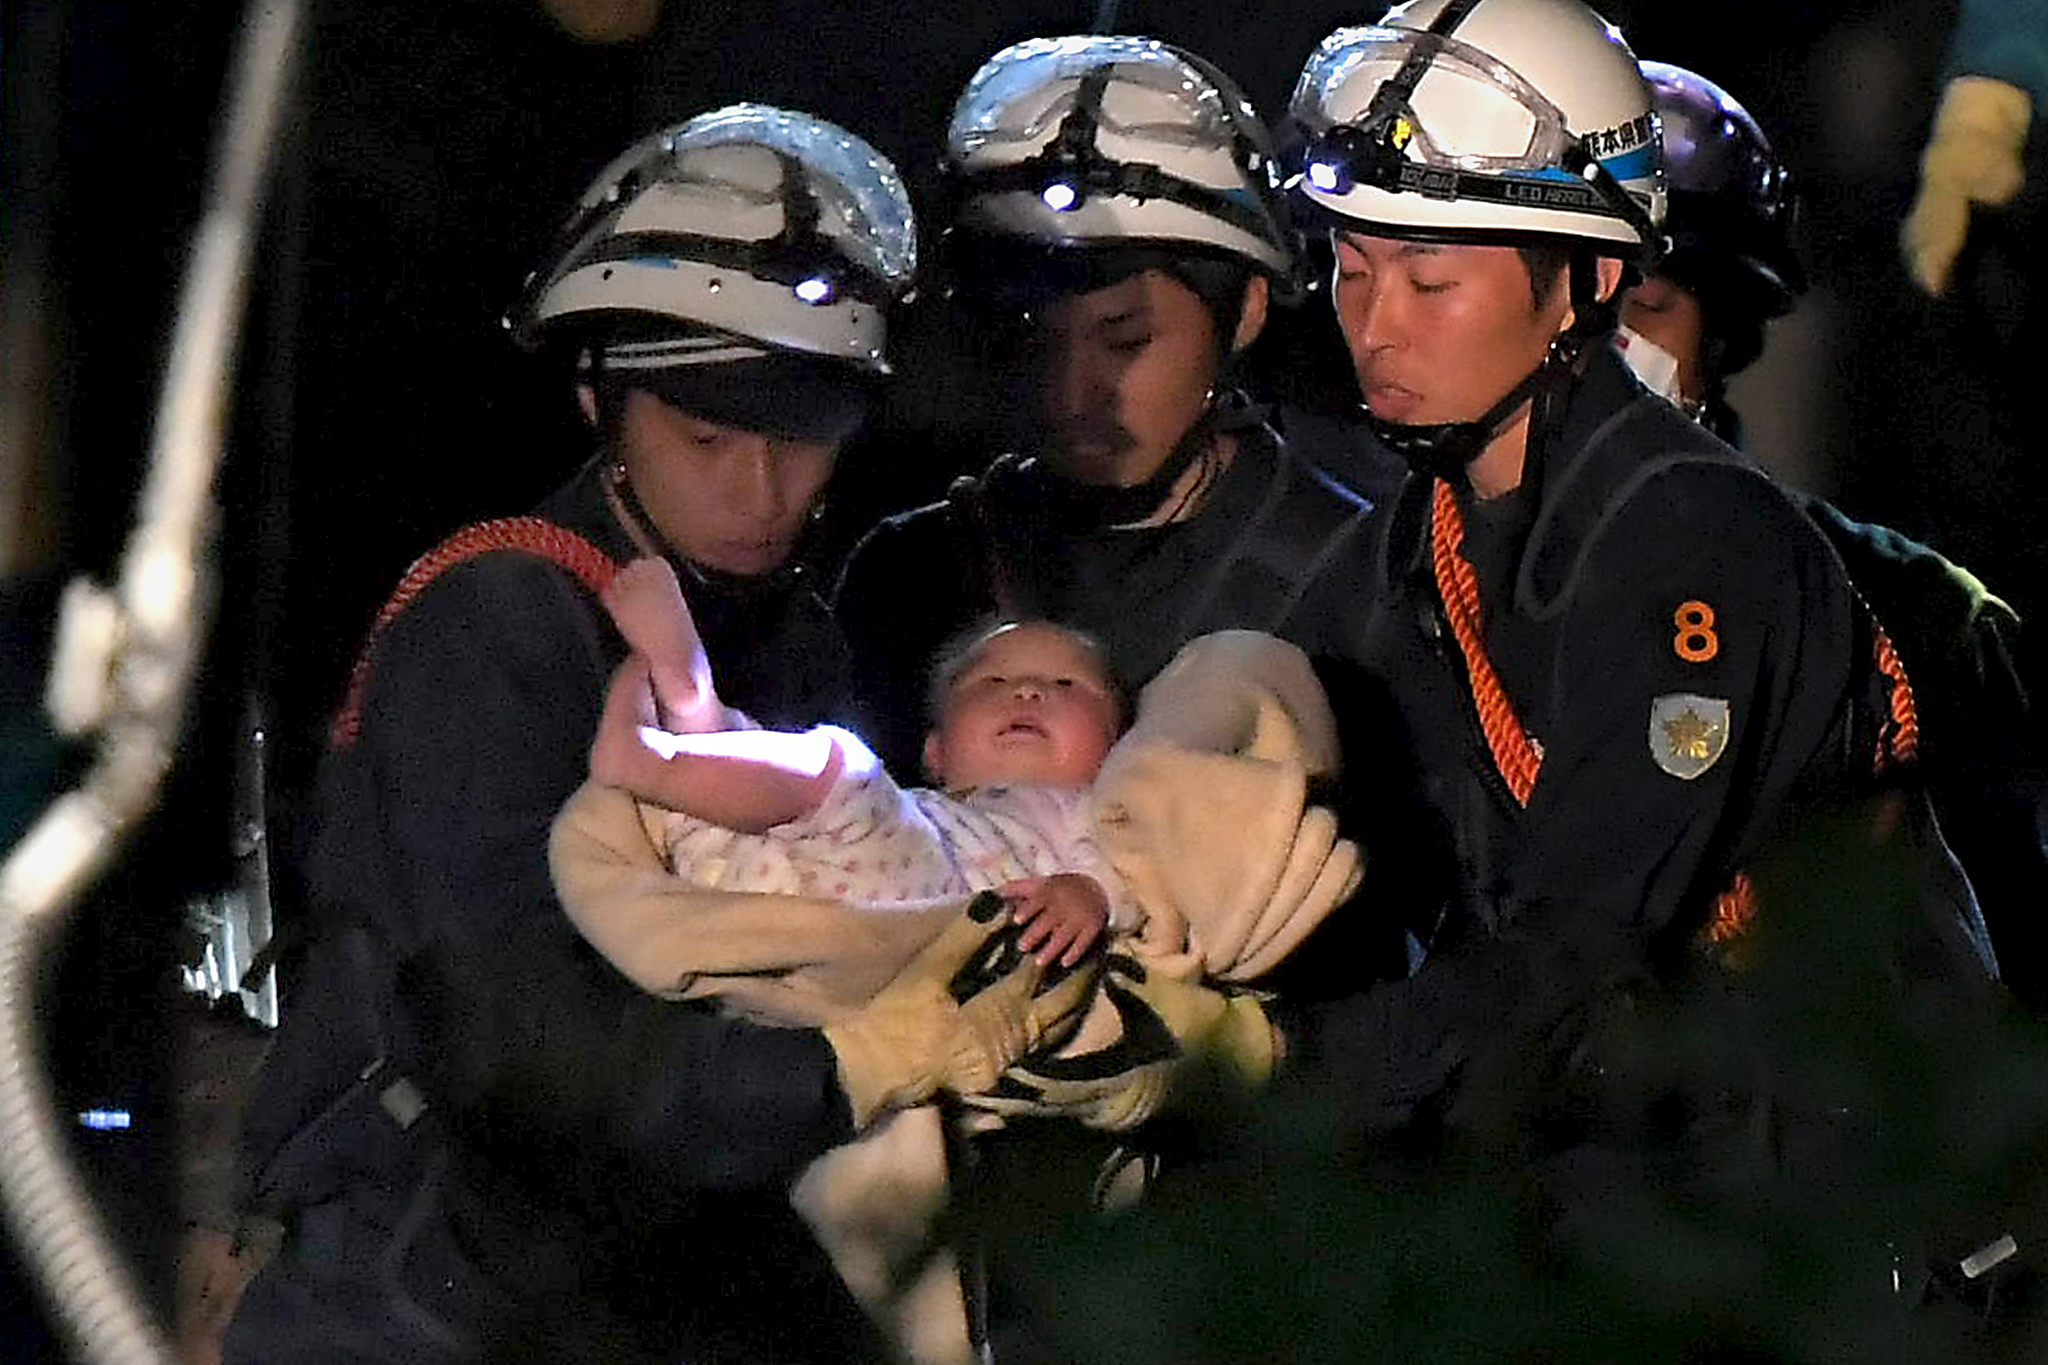 Baby is carried away by rescue workers after being rescued from her collapsed home caused by an earthquake in Mashiki town, Kumamoto prefecture, Japan...An eight-month-old baby is carried away by rescue workers after being rescued from her collapsed home caused by an earthquake in Mashiki town, Kumamoto prefecture, southern Japan, in this photo taken by Mainichi Shimbun April 15, 2016 early morning. Mandatory credit REUTERS/Daisuke Wada/Mainichi Shimbun via Reuters  ATTENTION EDITORS - THIS IMAGE WAS PROVIDED BY A THIRD PARTY. IT IS DISTRIBUTED EXACTLY AS RECEIVED BY REUTERS, AS A SERVICE TO CLIENTS. FOR EDITORIAL USE ONLY. NOT FOR SALE FOR MARKETING OR ADVERTISING CAMPAIGNS. MANDATORY CREDIT. NO RESALES. NO ARCHIVE. JAPAN OUT. NO COMMERCIAL OR EDITORIAL SALES IN JAPAN.       TPX IMAGES OF THE DAY